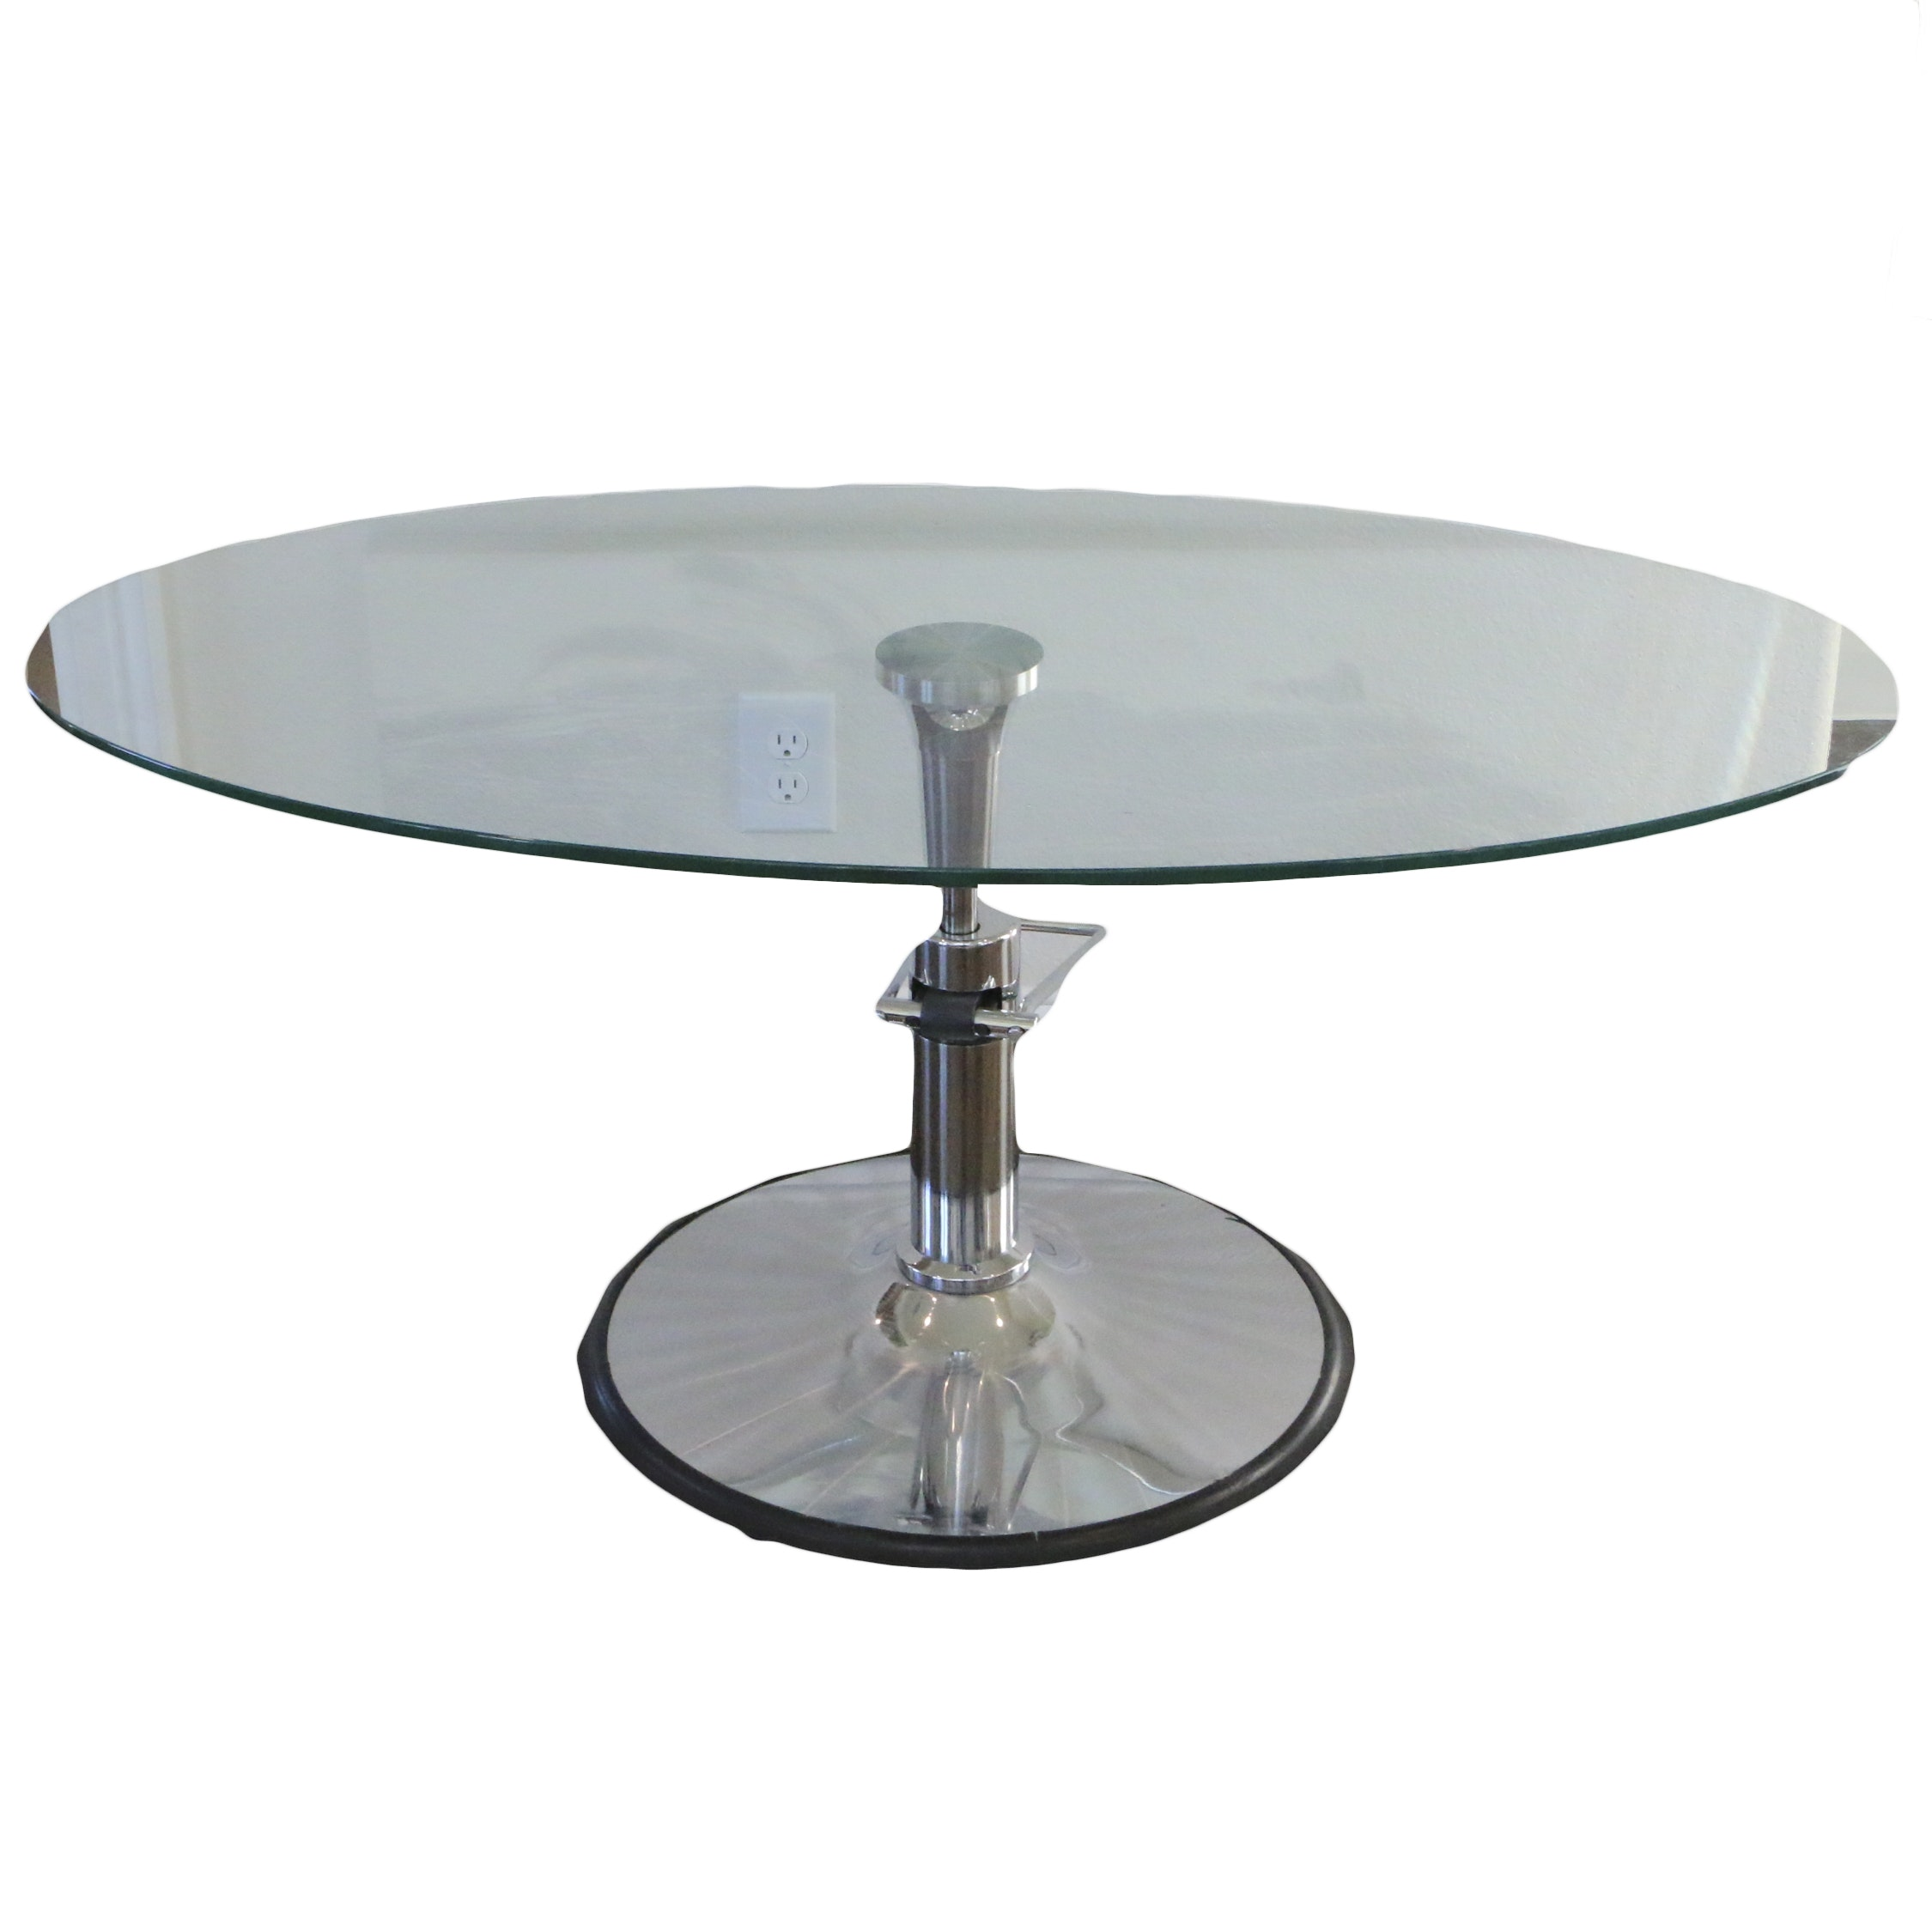 Hydra Design Glass Top Adjustable Coffee Table